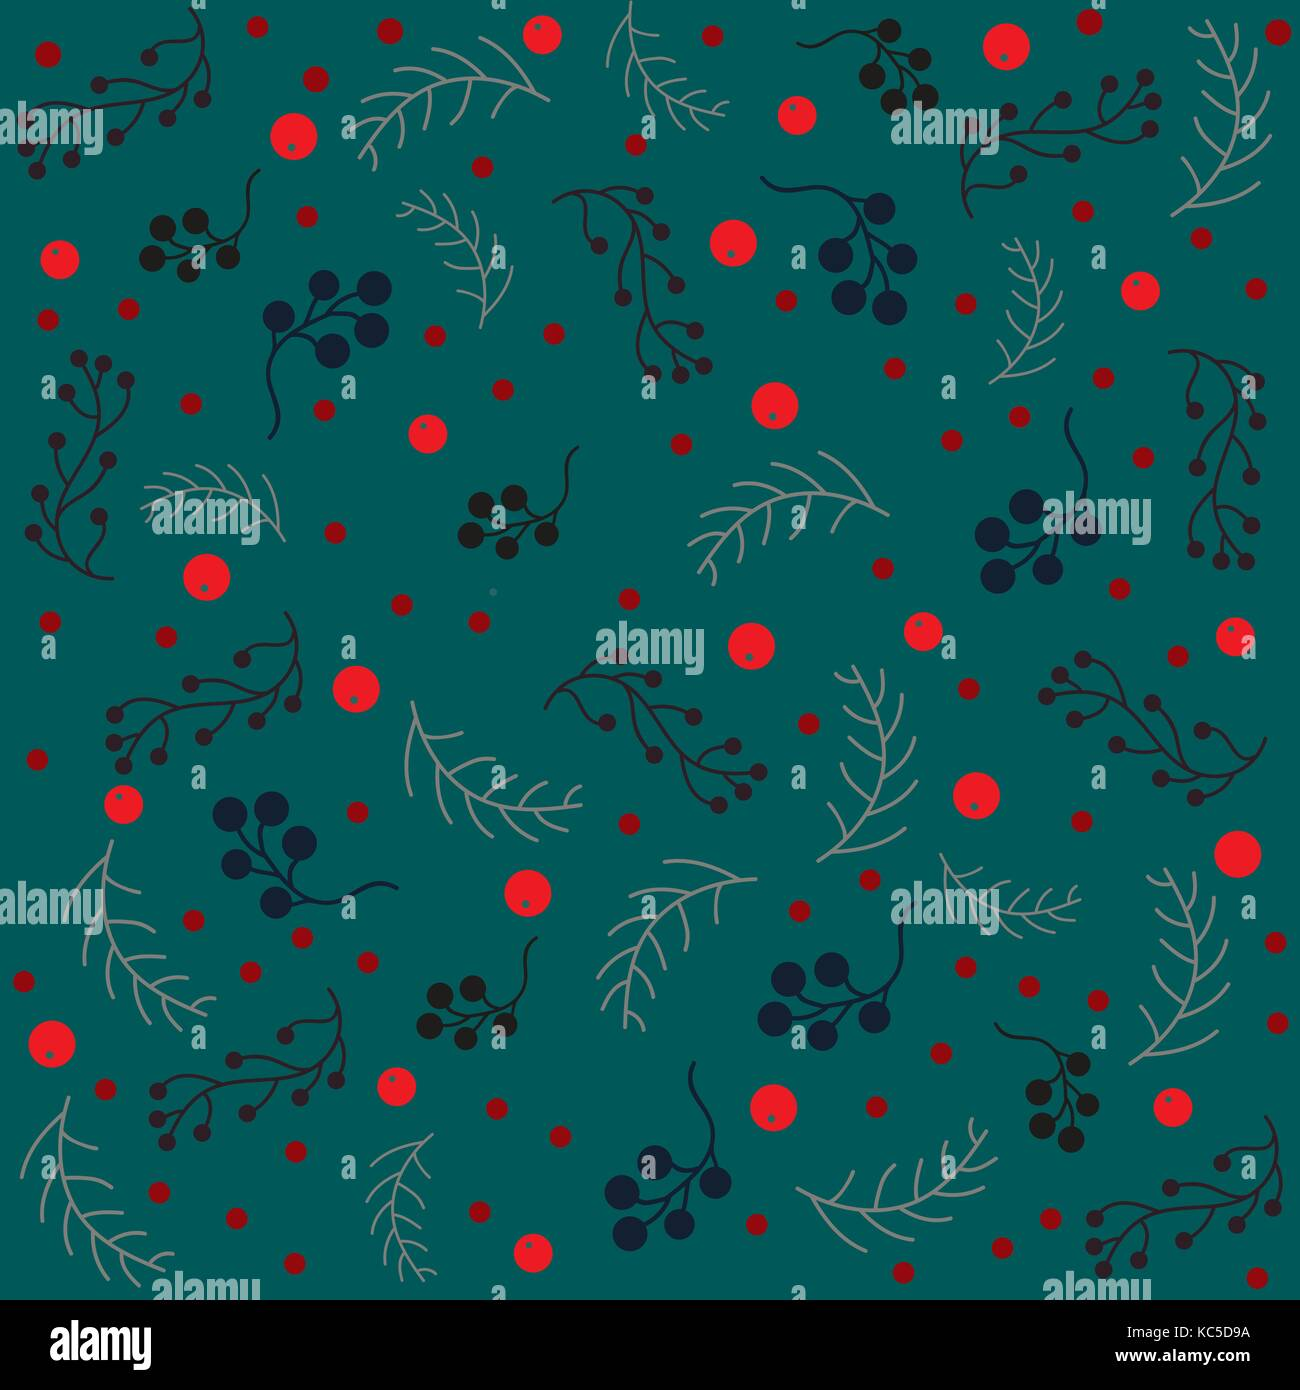 Seamless Christmas pattern with branches with berries and spruce branches. Vector illustration.Winter Collection - Stock Vector